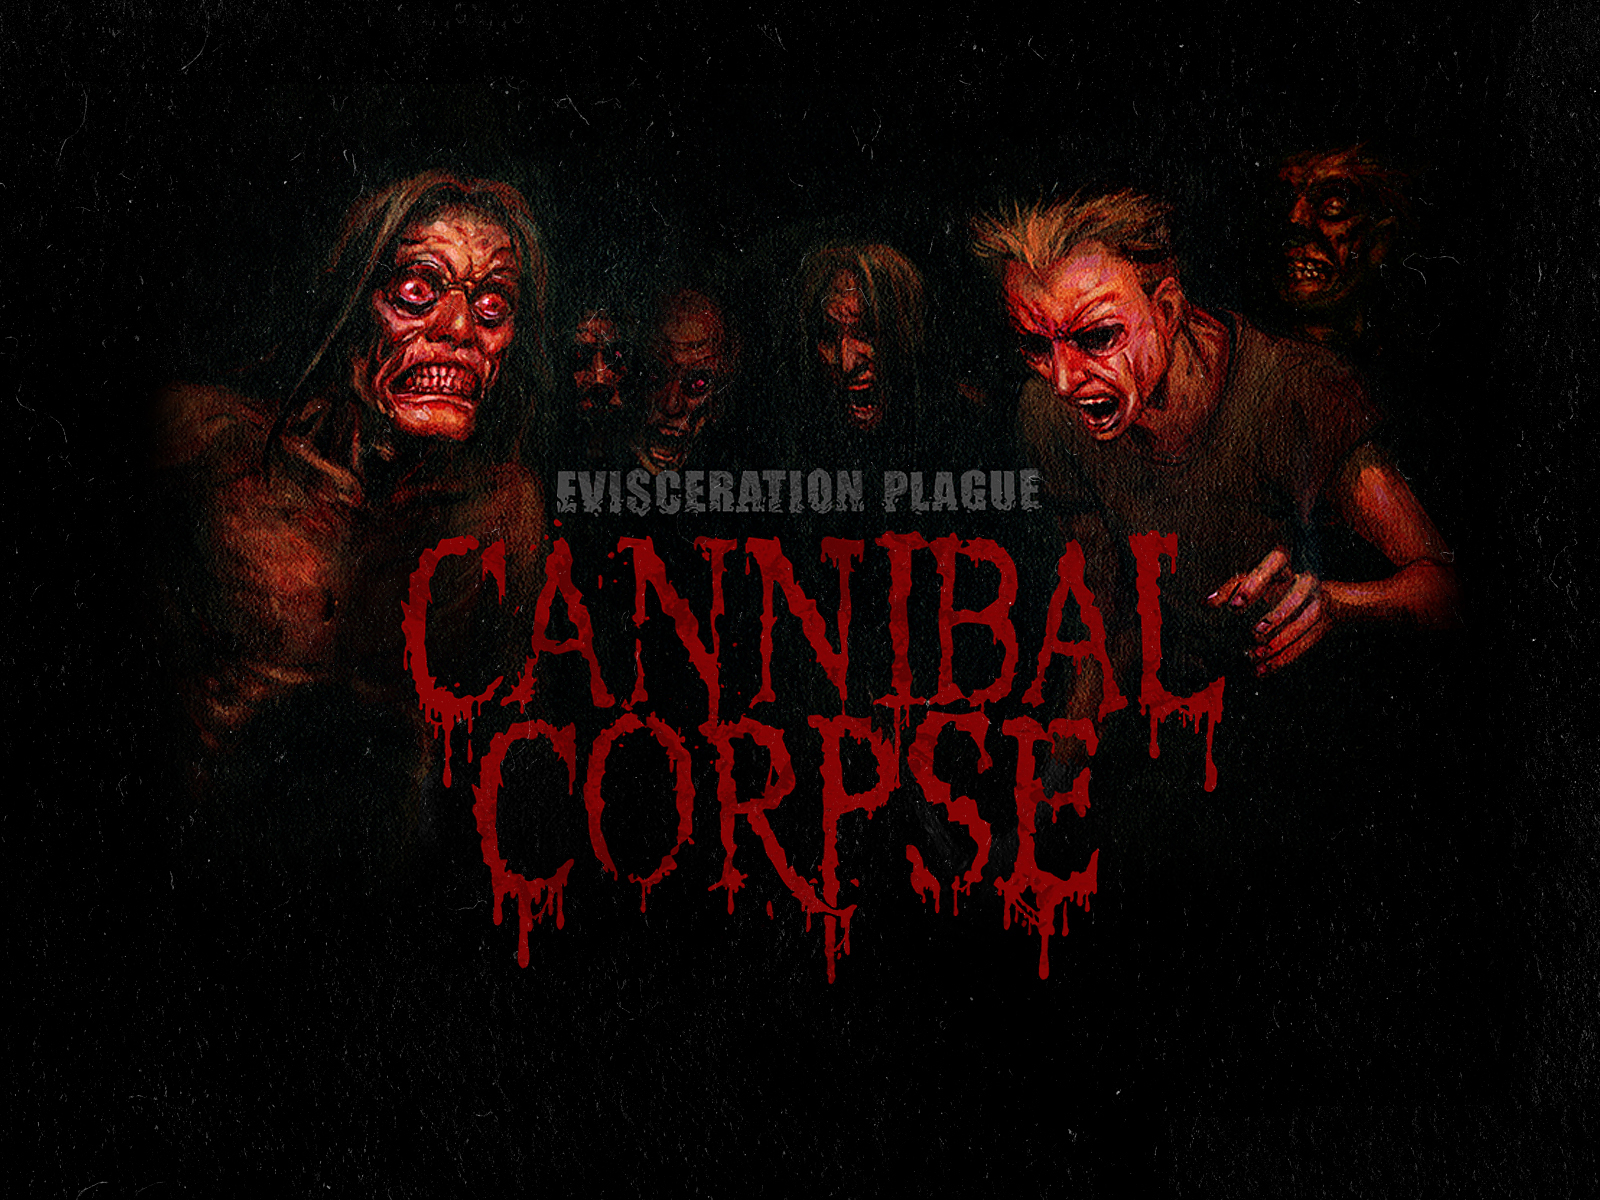 Cannibal Corpse Wallpaper And Background Image 1600x1200